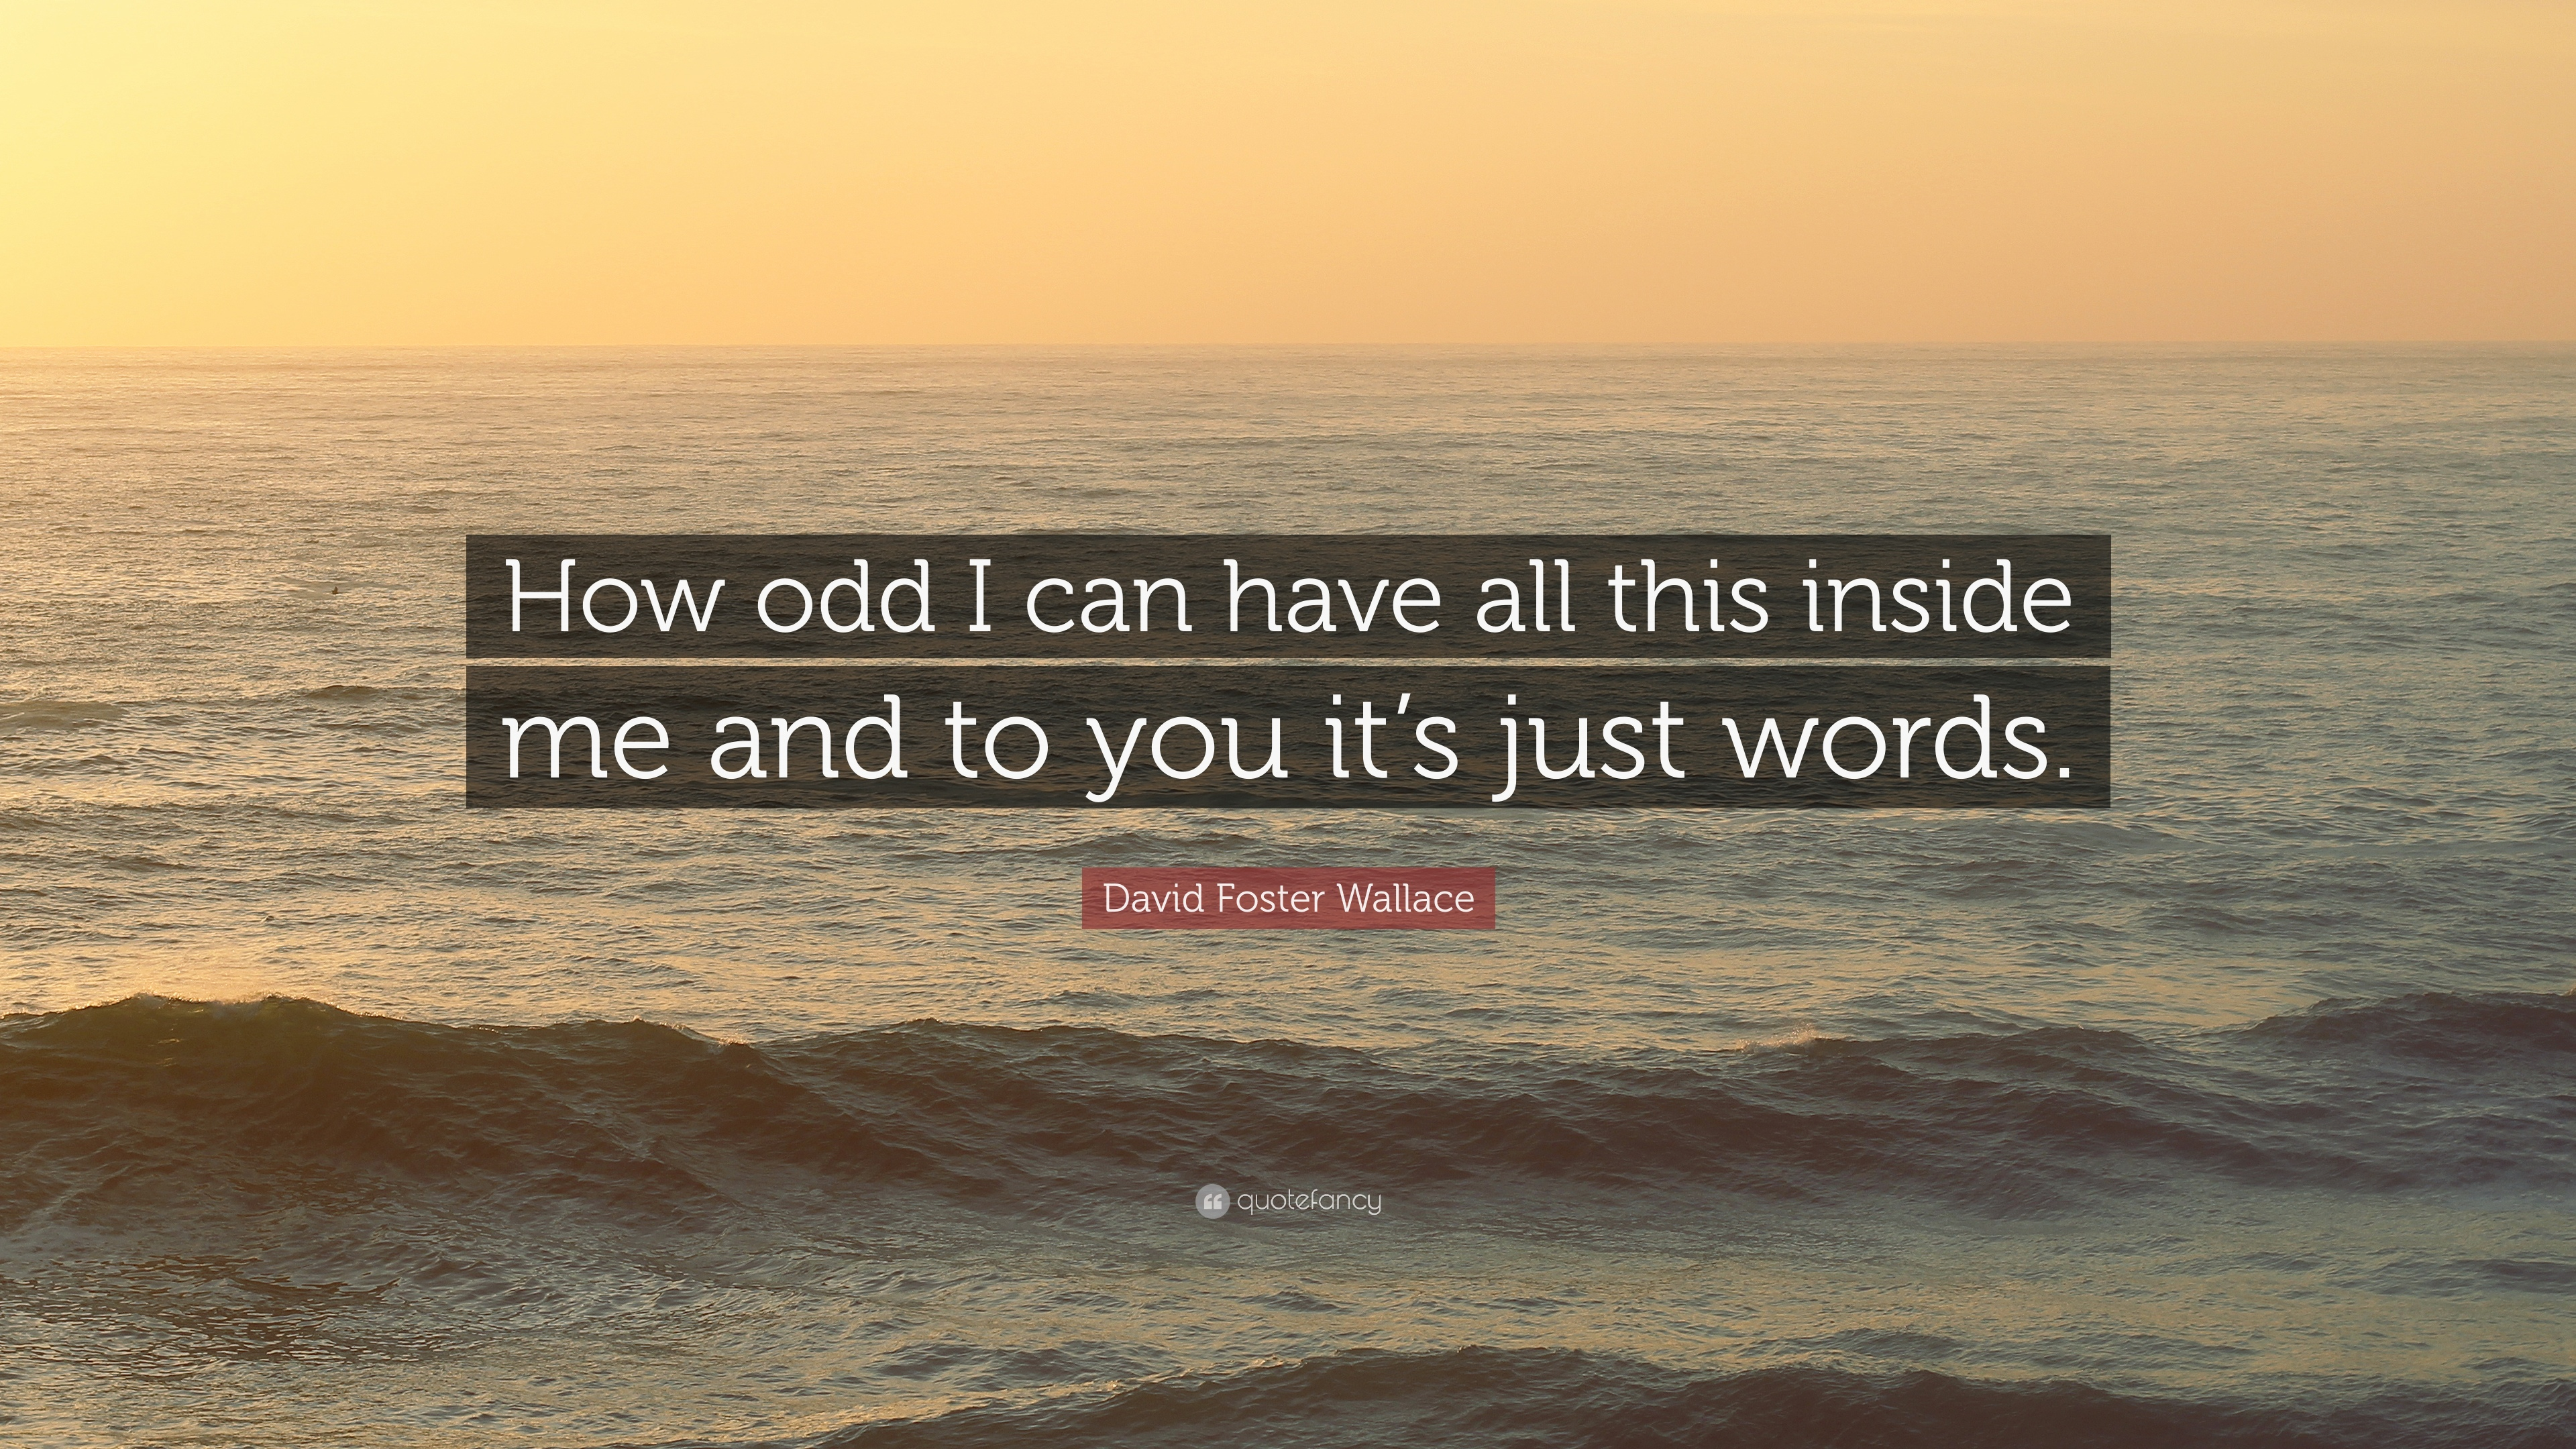 David Foster Wallace Quotes Wallpaper David Foster Wallace Quote How Odd I Can Have All This